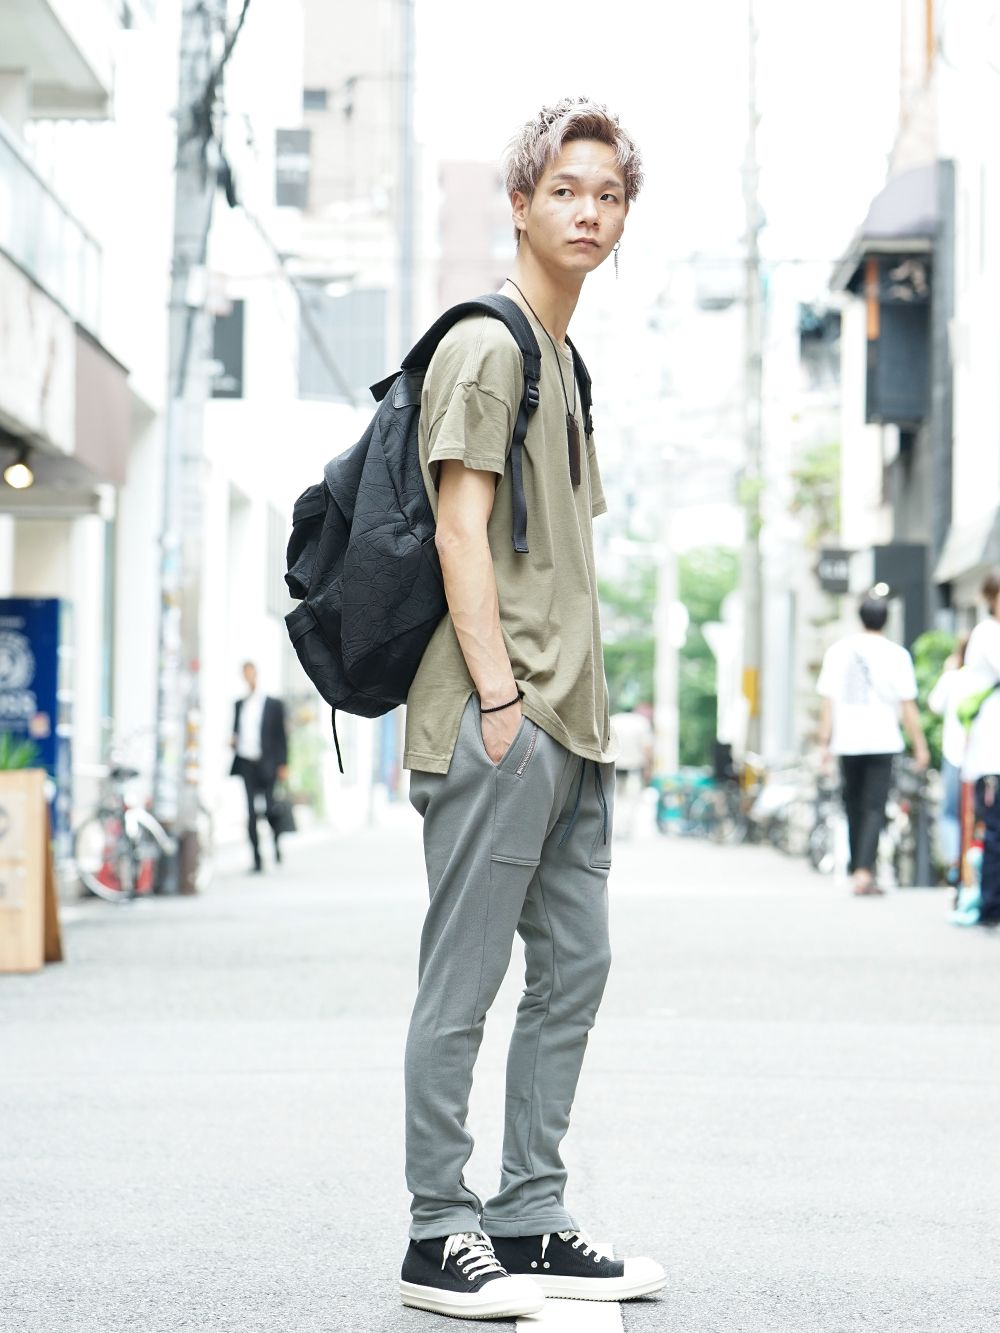 DIET BUTCHER SLIM SKIN 19AW Earth color Styling - 1-002